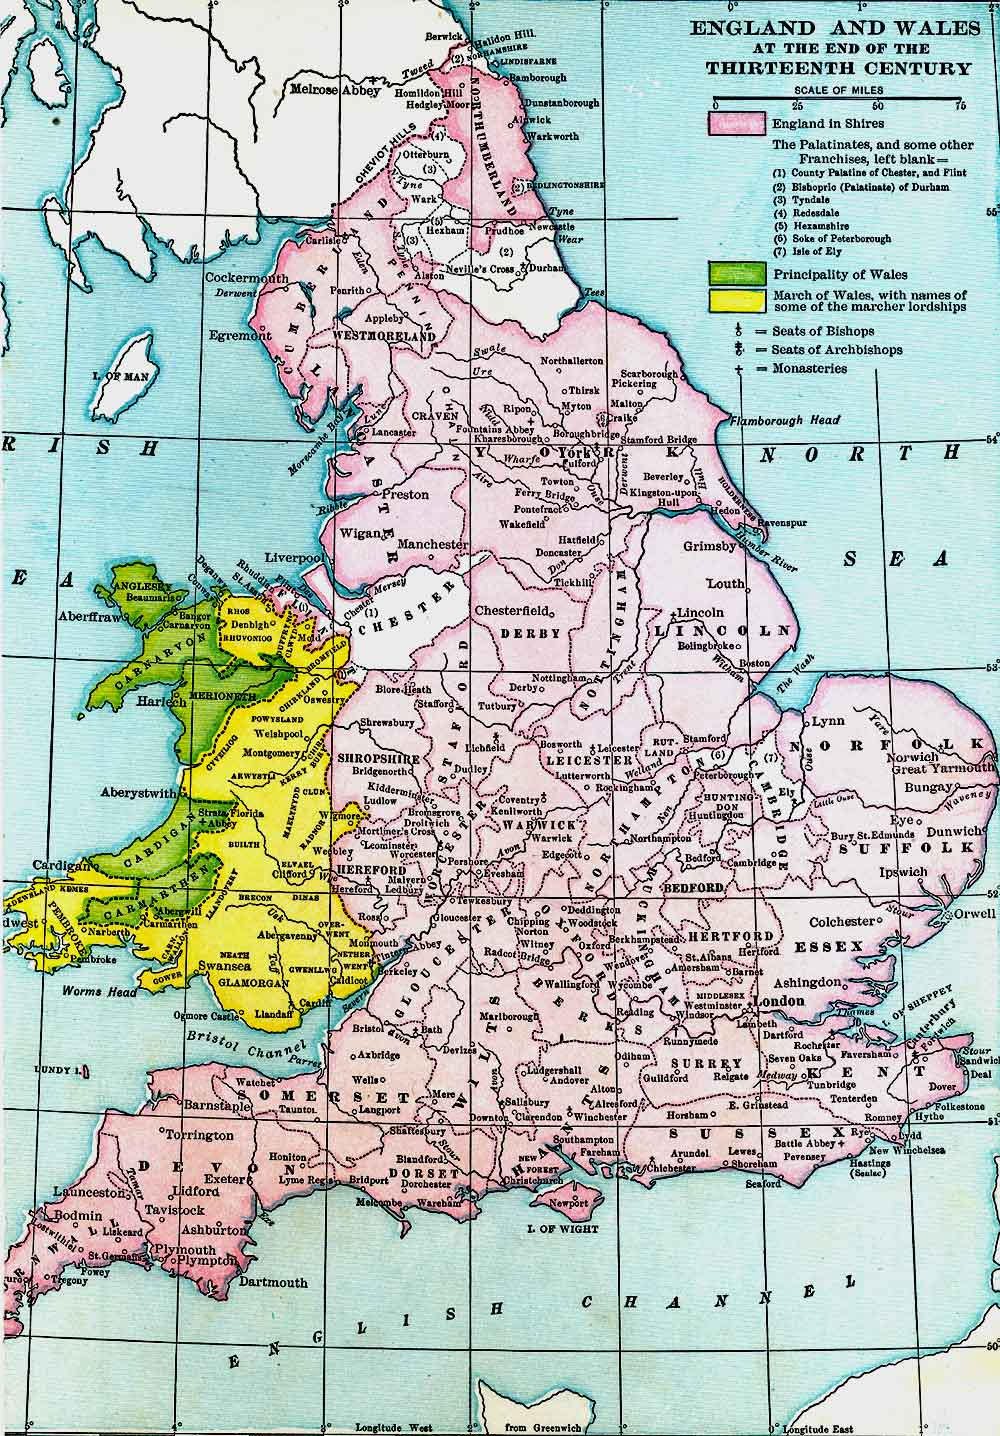 England and Wales at the End of the Thirteenth Century